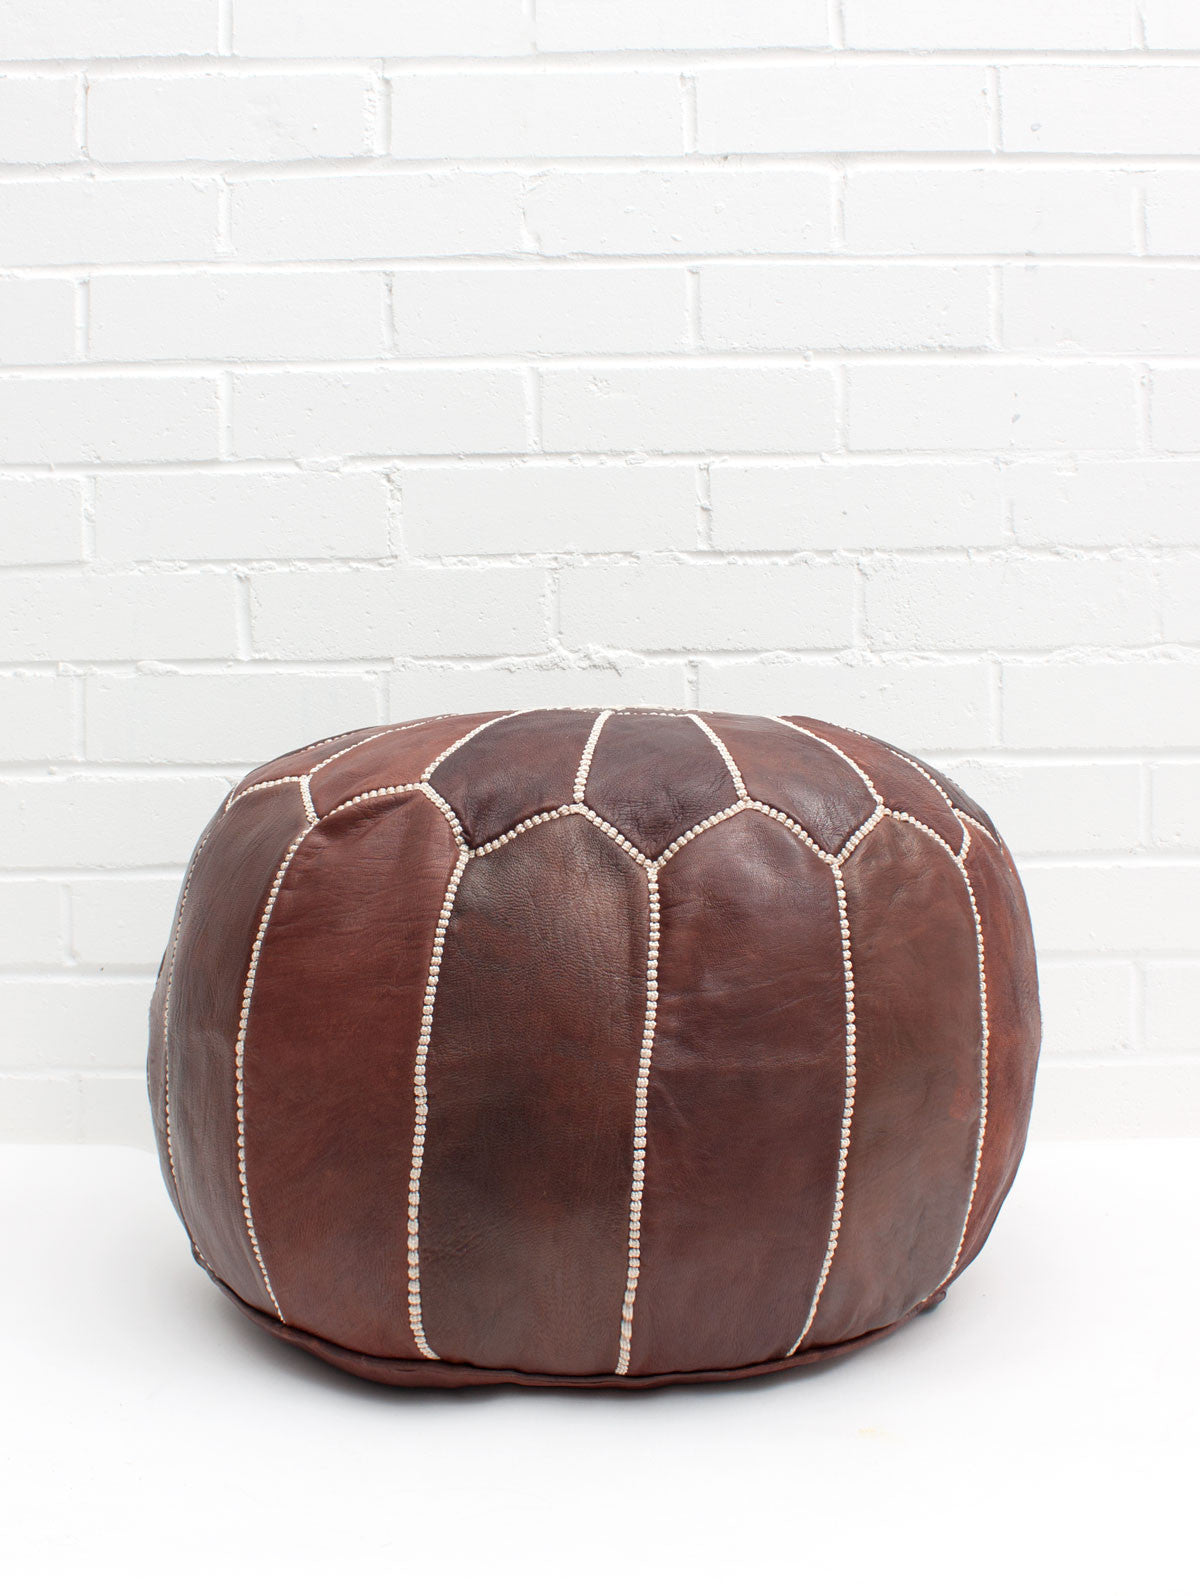 Moroccan Leather Pouffe, Chocolate Mocha Oiled